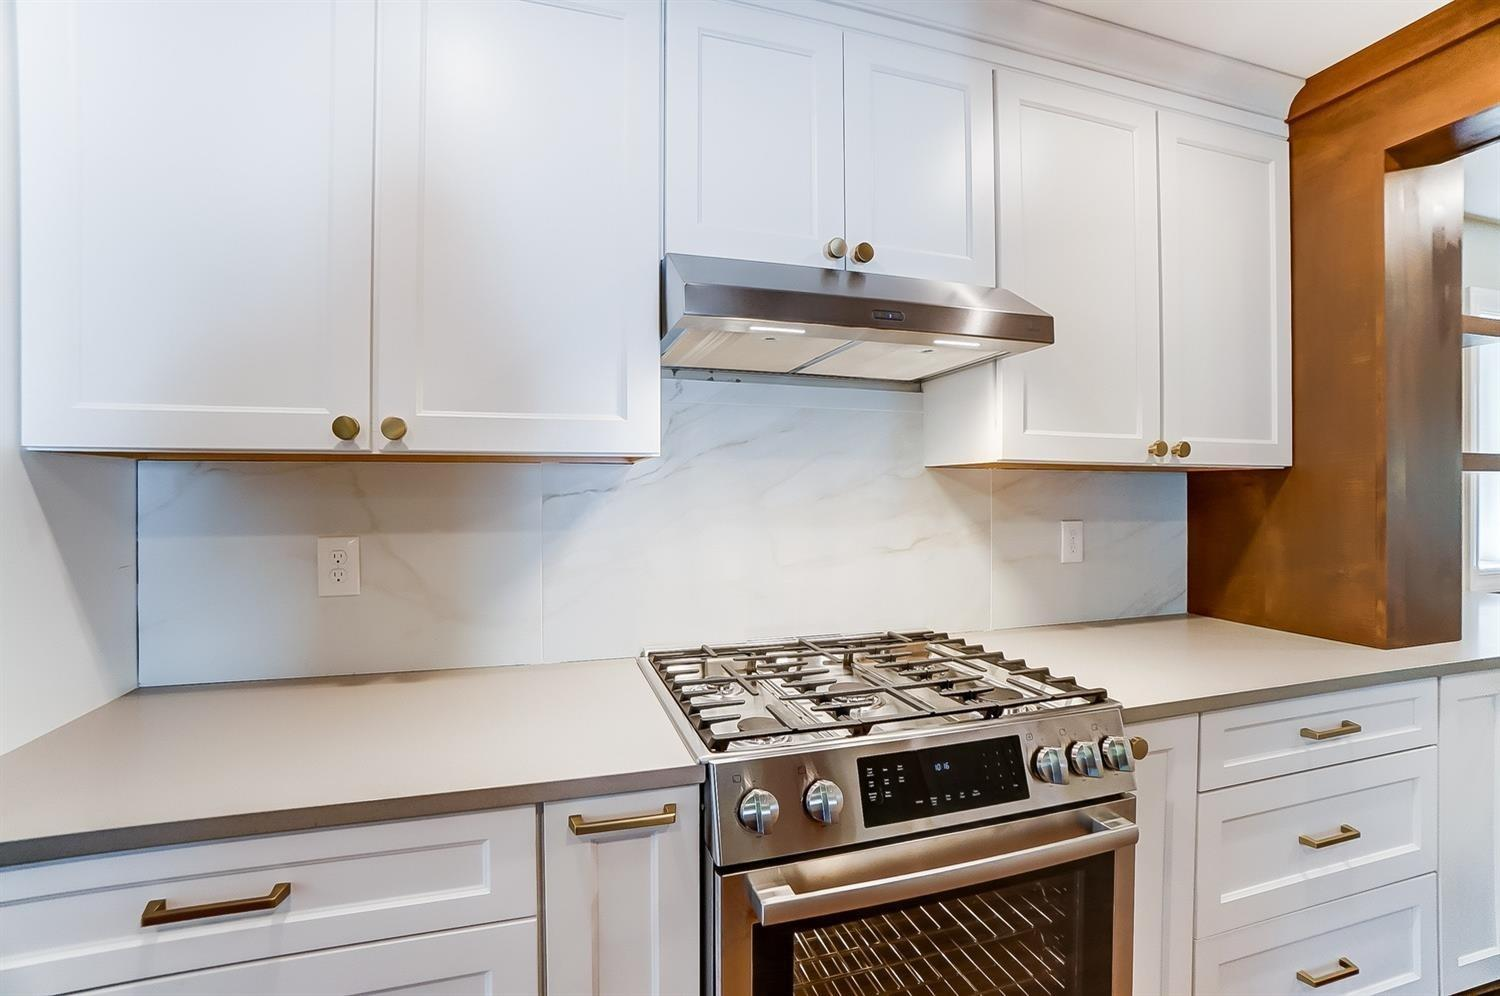 Gleaming Bosch appliances throughout this kitchen. Gas 5 burner range/oven. Quartz mixed recycled solid surface counters have flecks of mica that offer sparkle.